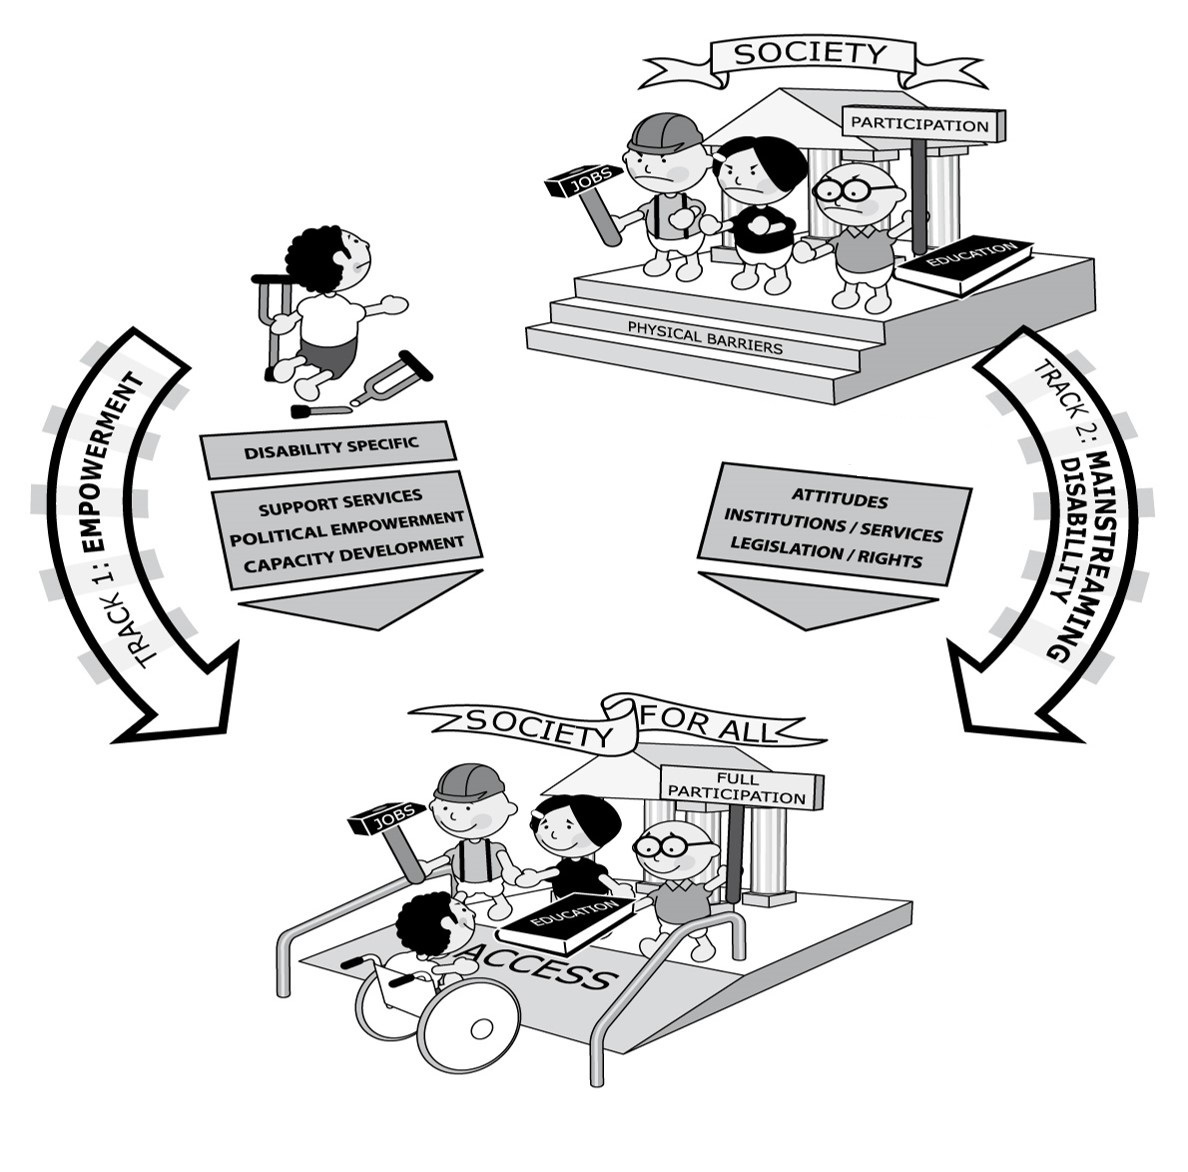 A graphic of the twin-track approach to disability inclusive development. At the top of the graphic, we see a boy with crutches facing barriers to participation, including steps to represent physical barriers. Two tracks run down from this image. The first shows the title empowerment, with boxes showing disability specific support services, political empowerment and capacity development. The second shows the title mainstreaming disability, with boxes showing attitudes, services and legislation. At the bottom, the boy is now in a wheelchair and is able to fully participate. He is about to go up a ramp.